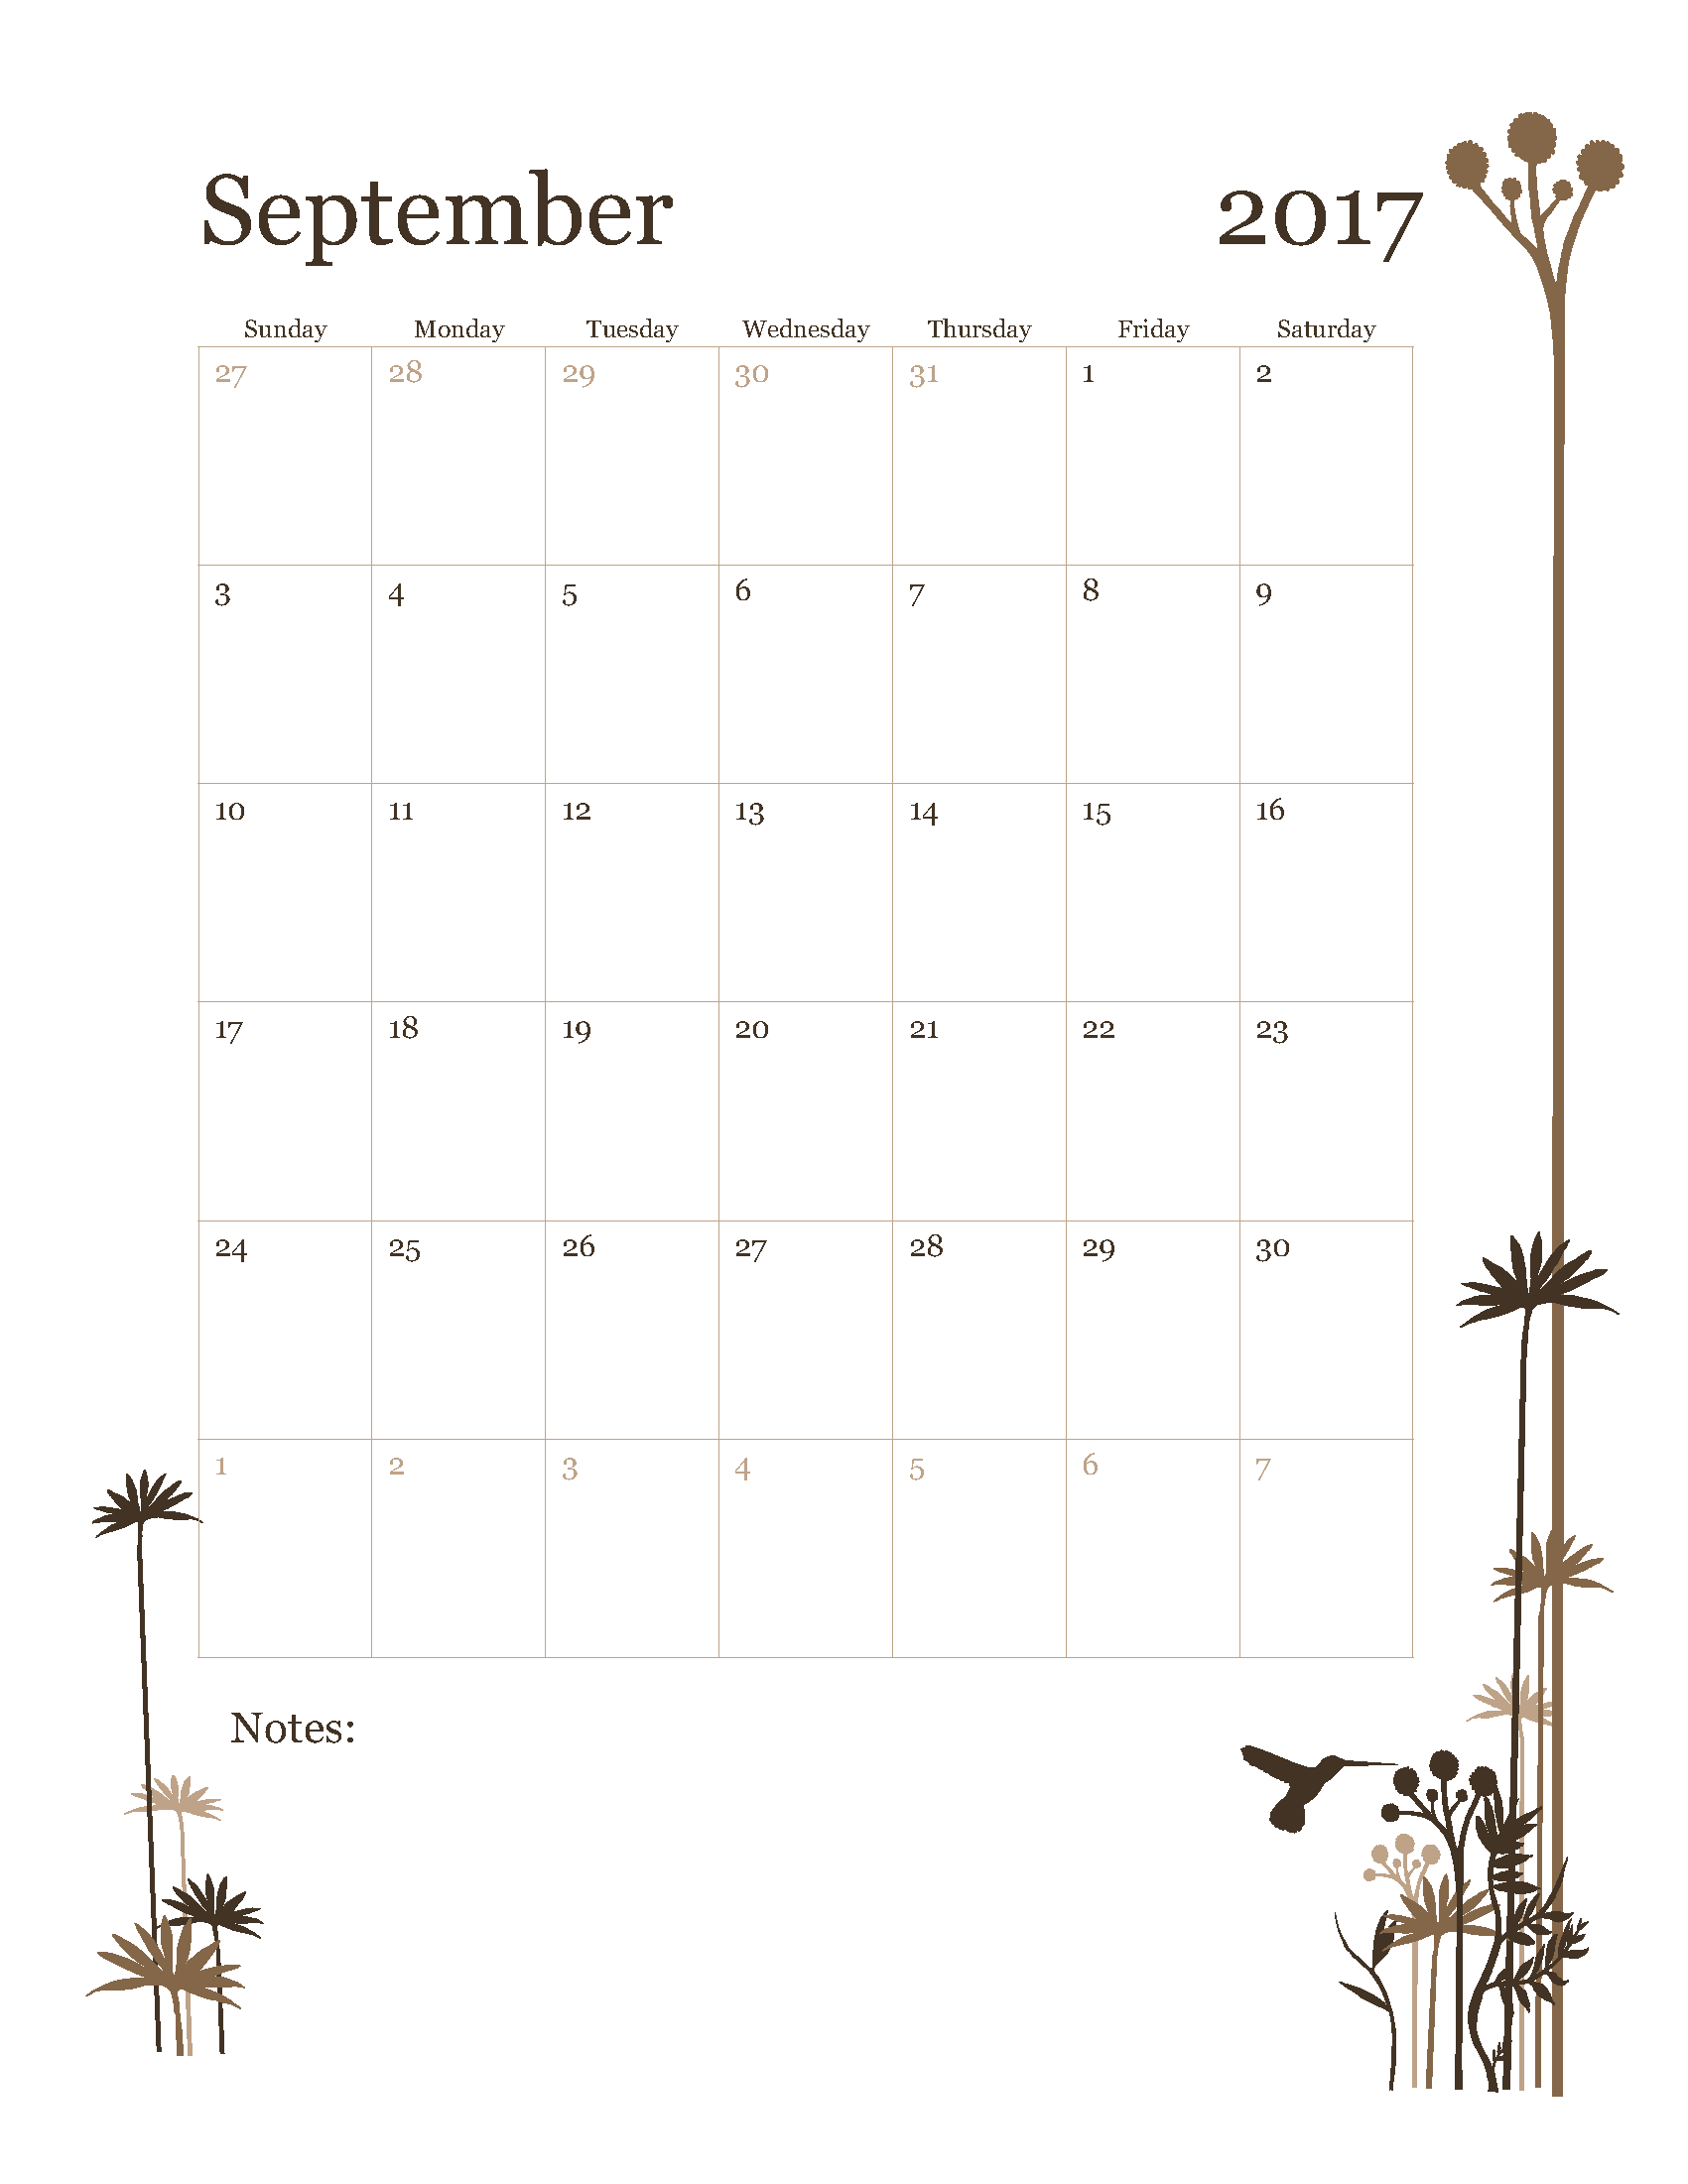 Free September 2017 Calendar Template Printable Start on Sunday - HummingBird design